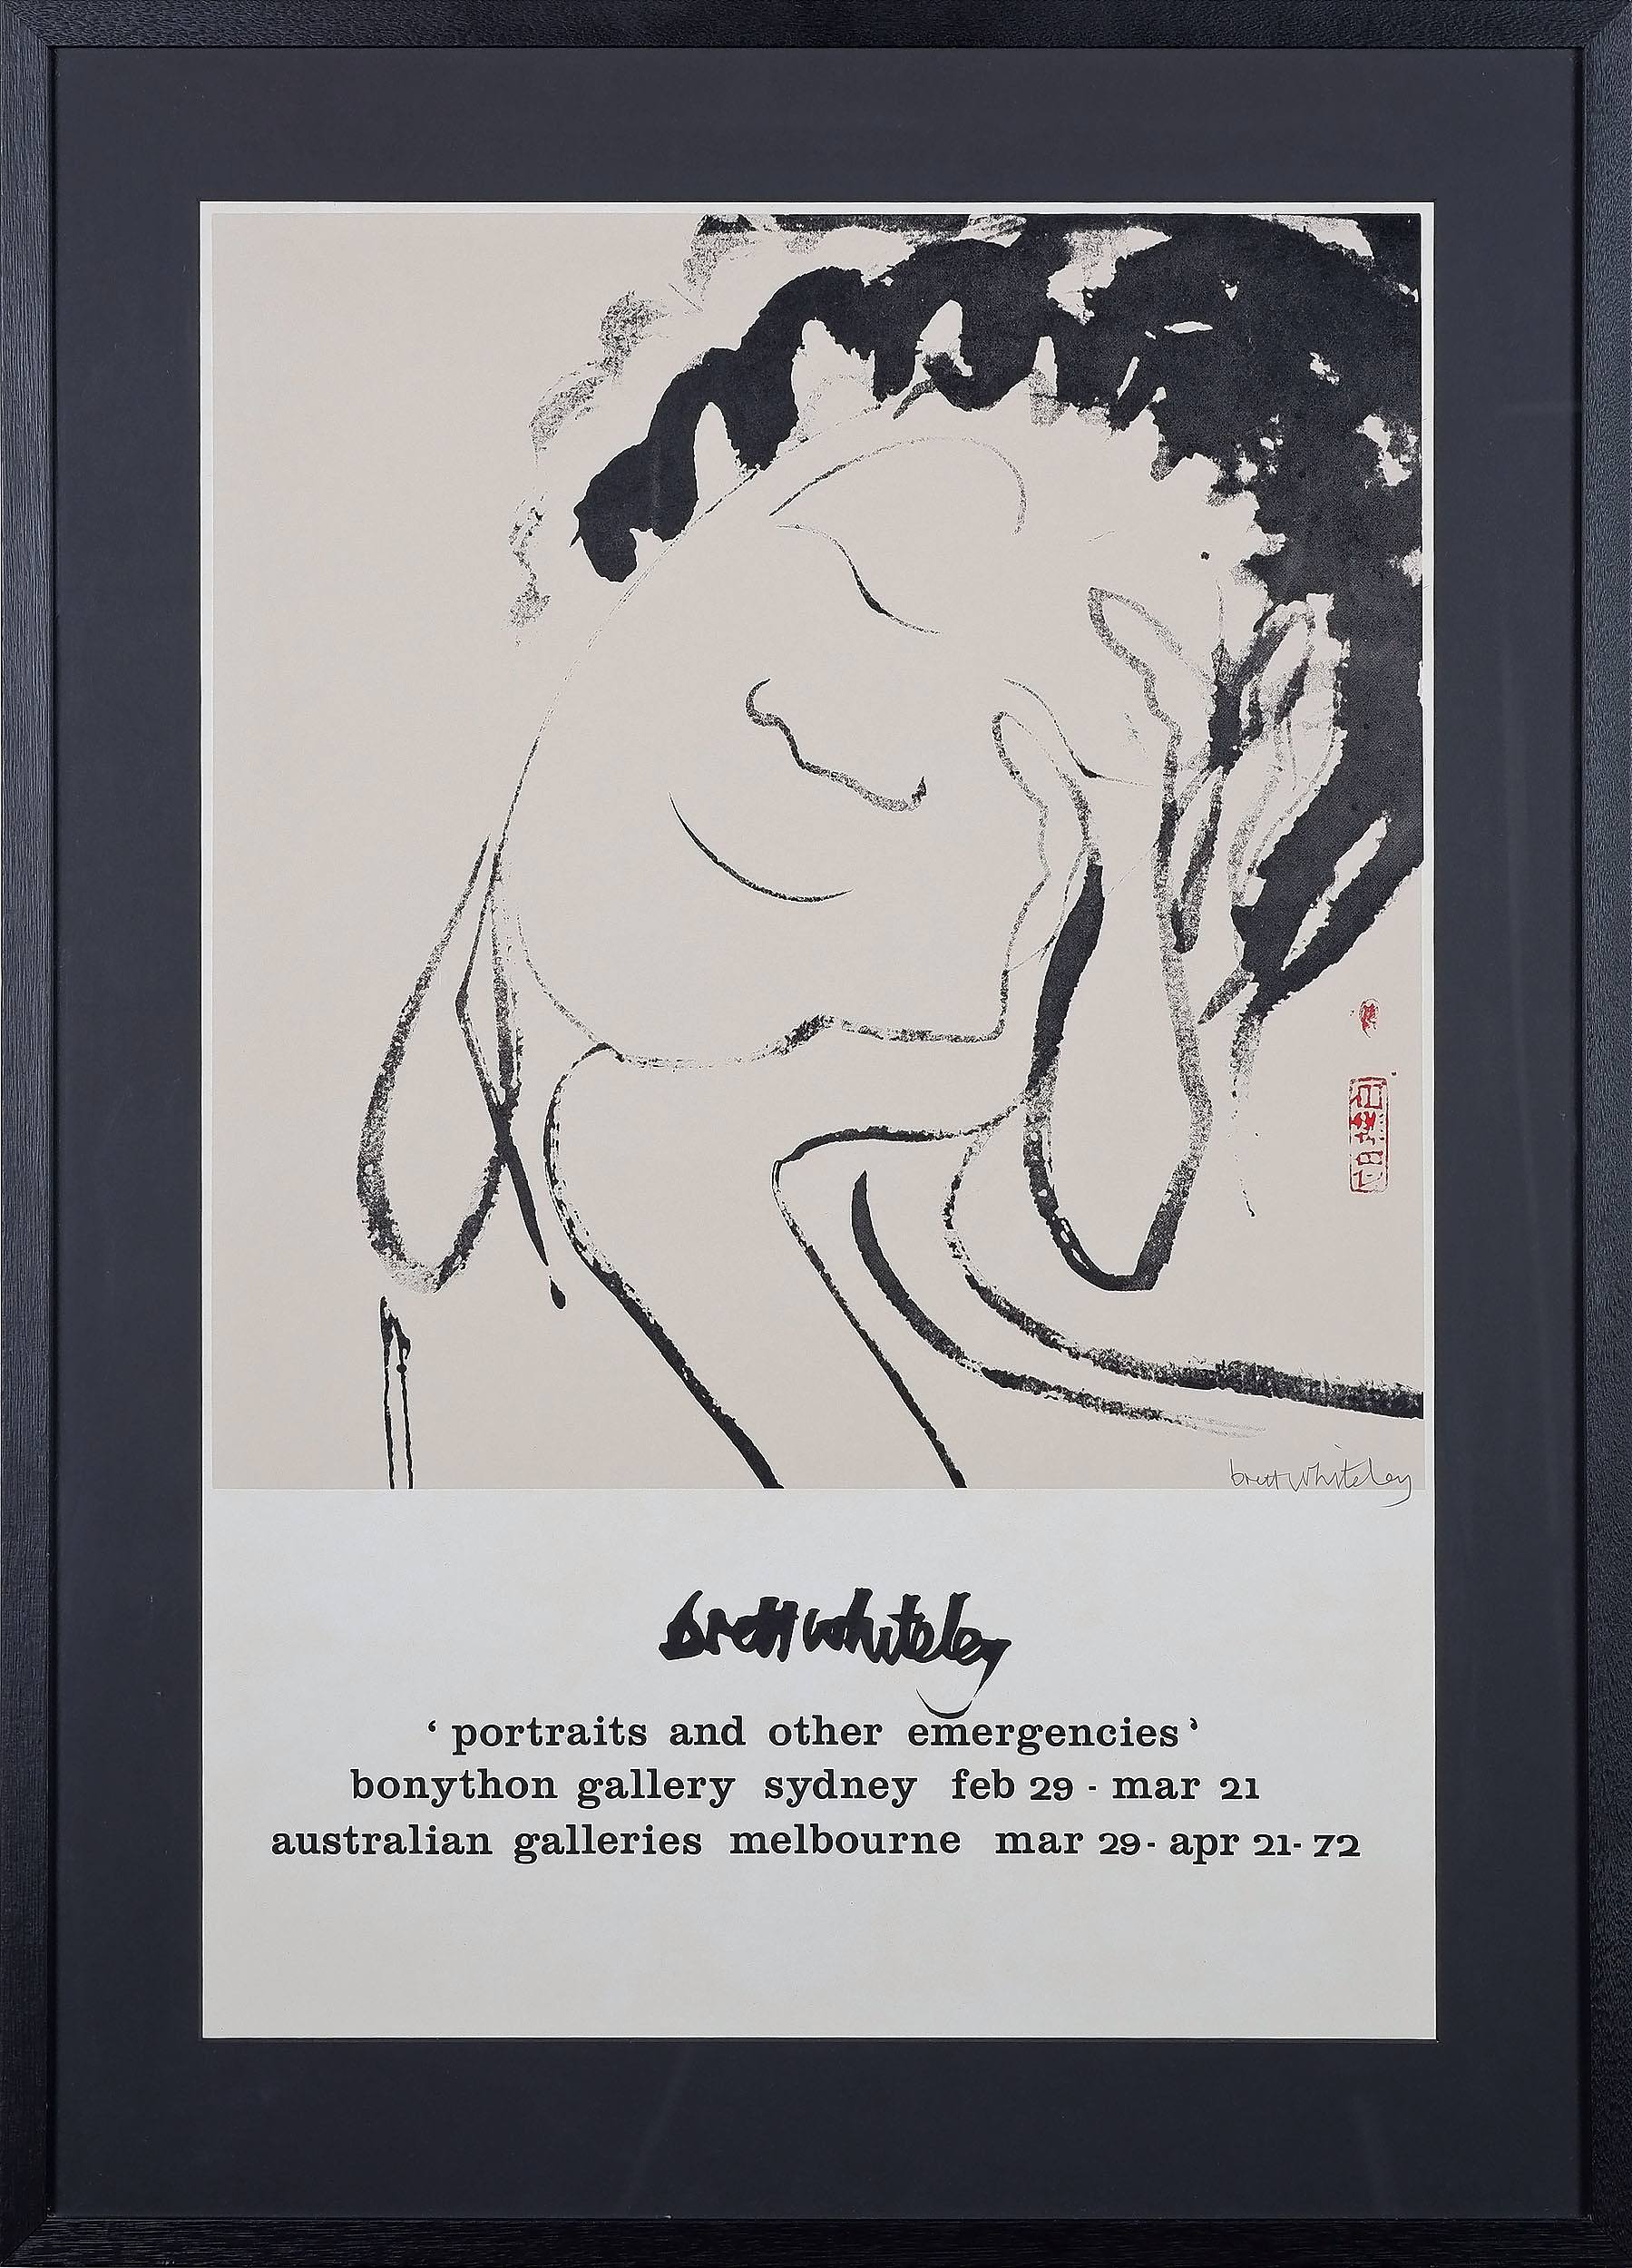 'Brett Whiteley (1939-1992) Portraits and Other Emergencies Exhibition Poster, Hand Signed Offset Print'